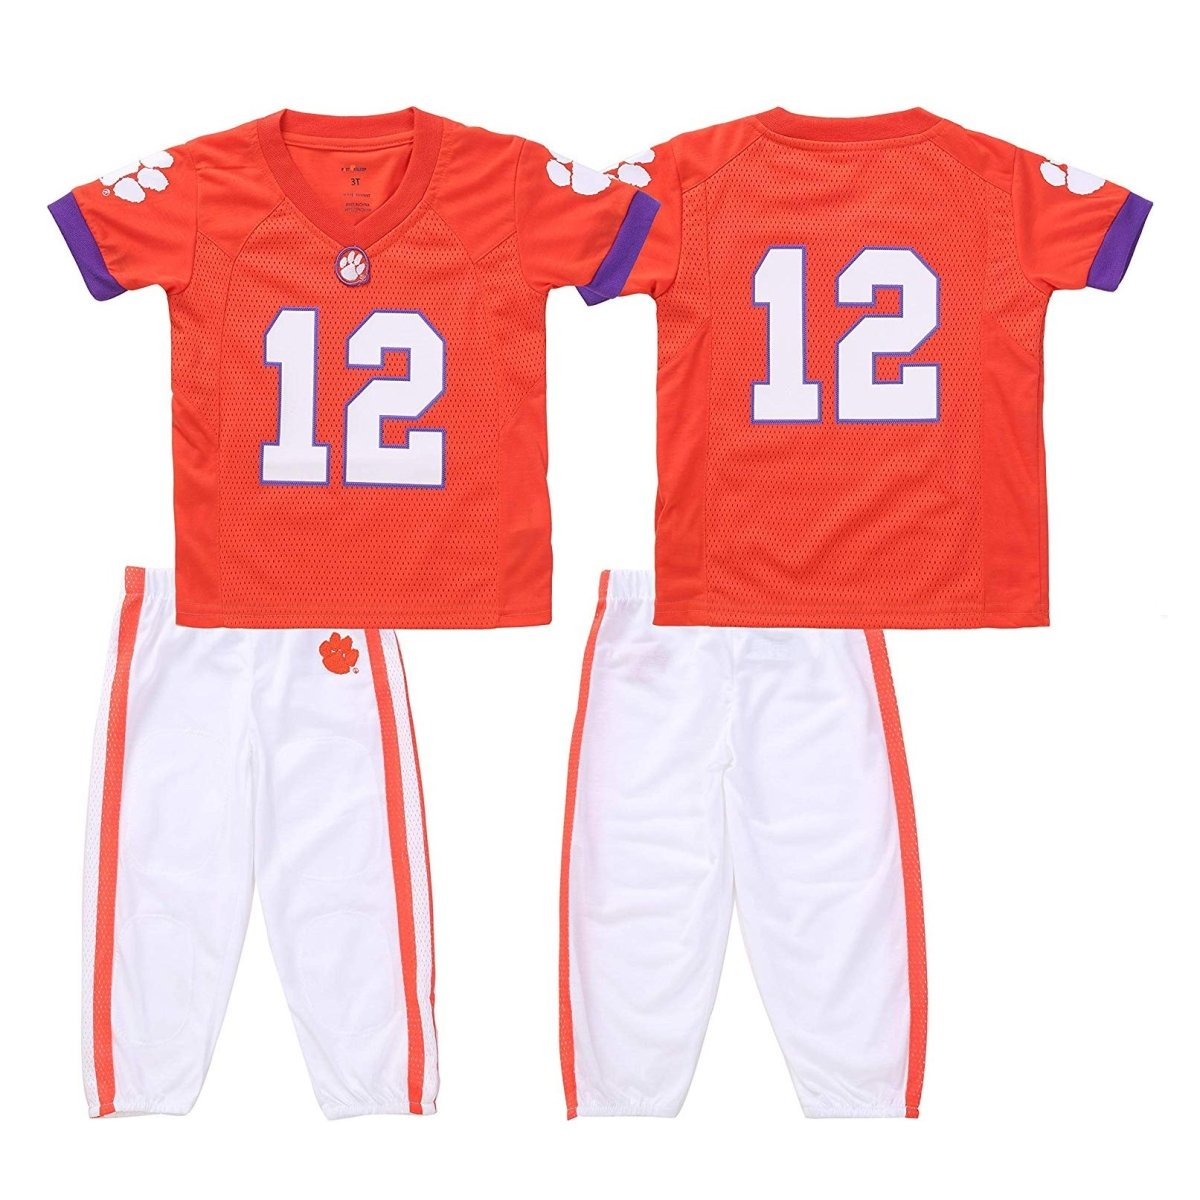 Childs Football Uniform Pjs - Mr. Knickerbocker